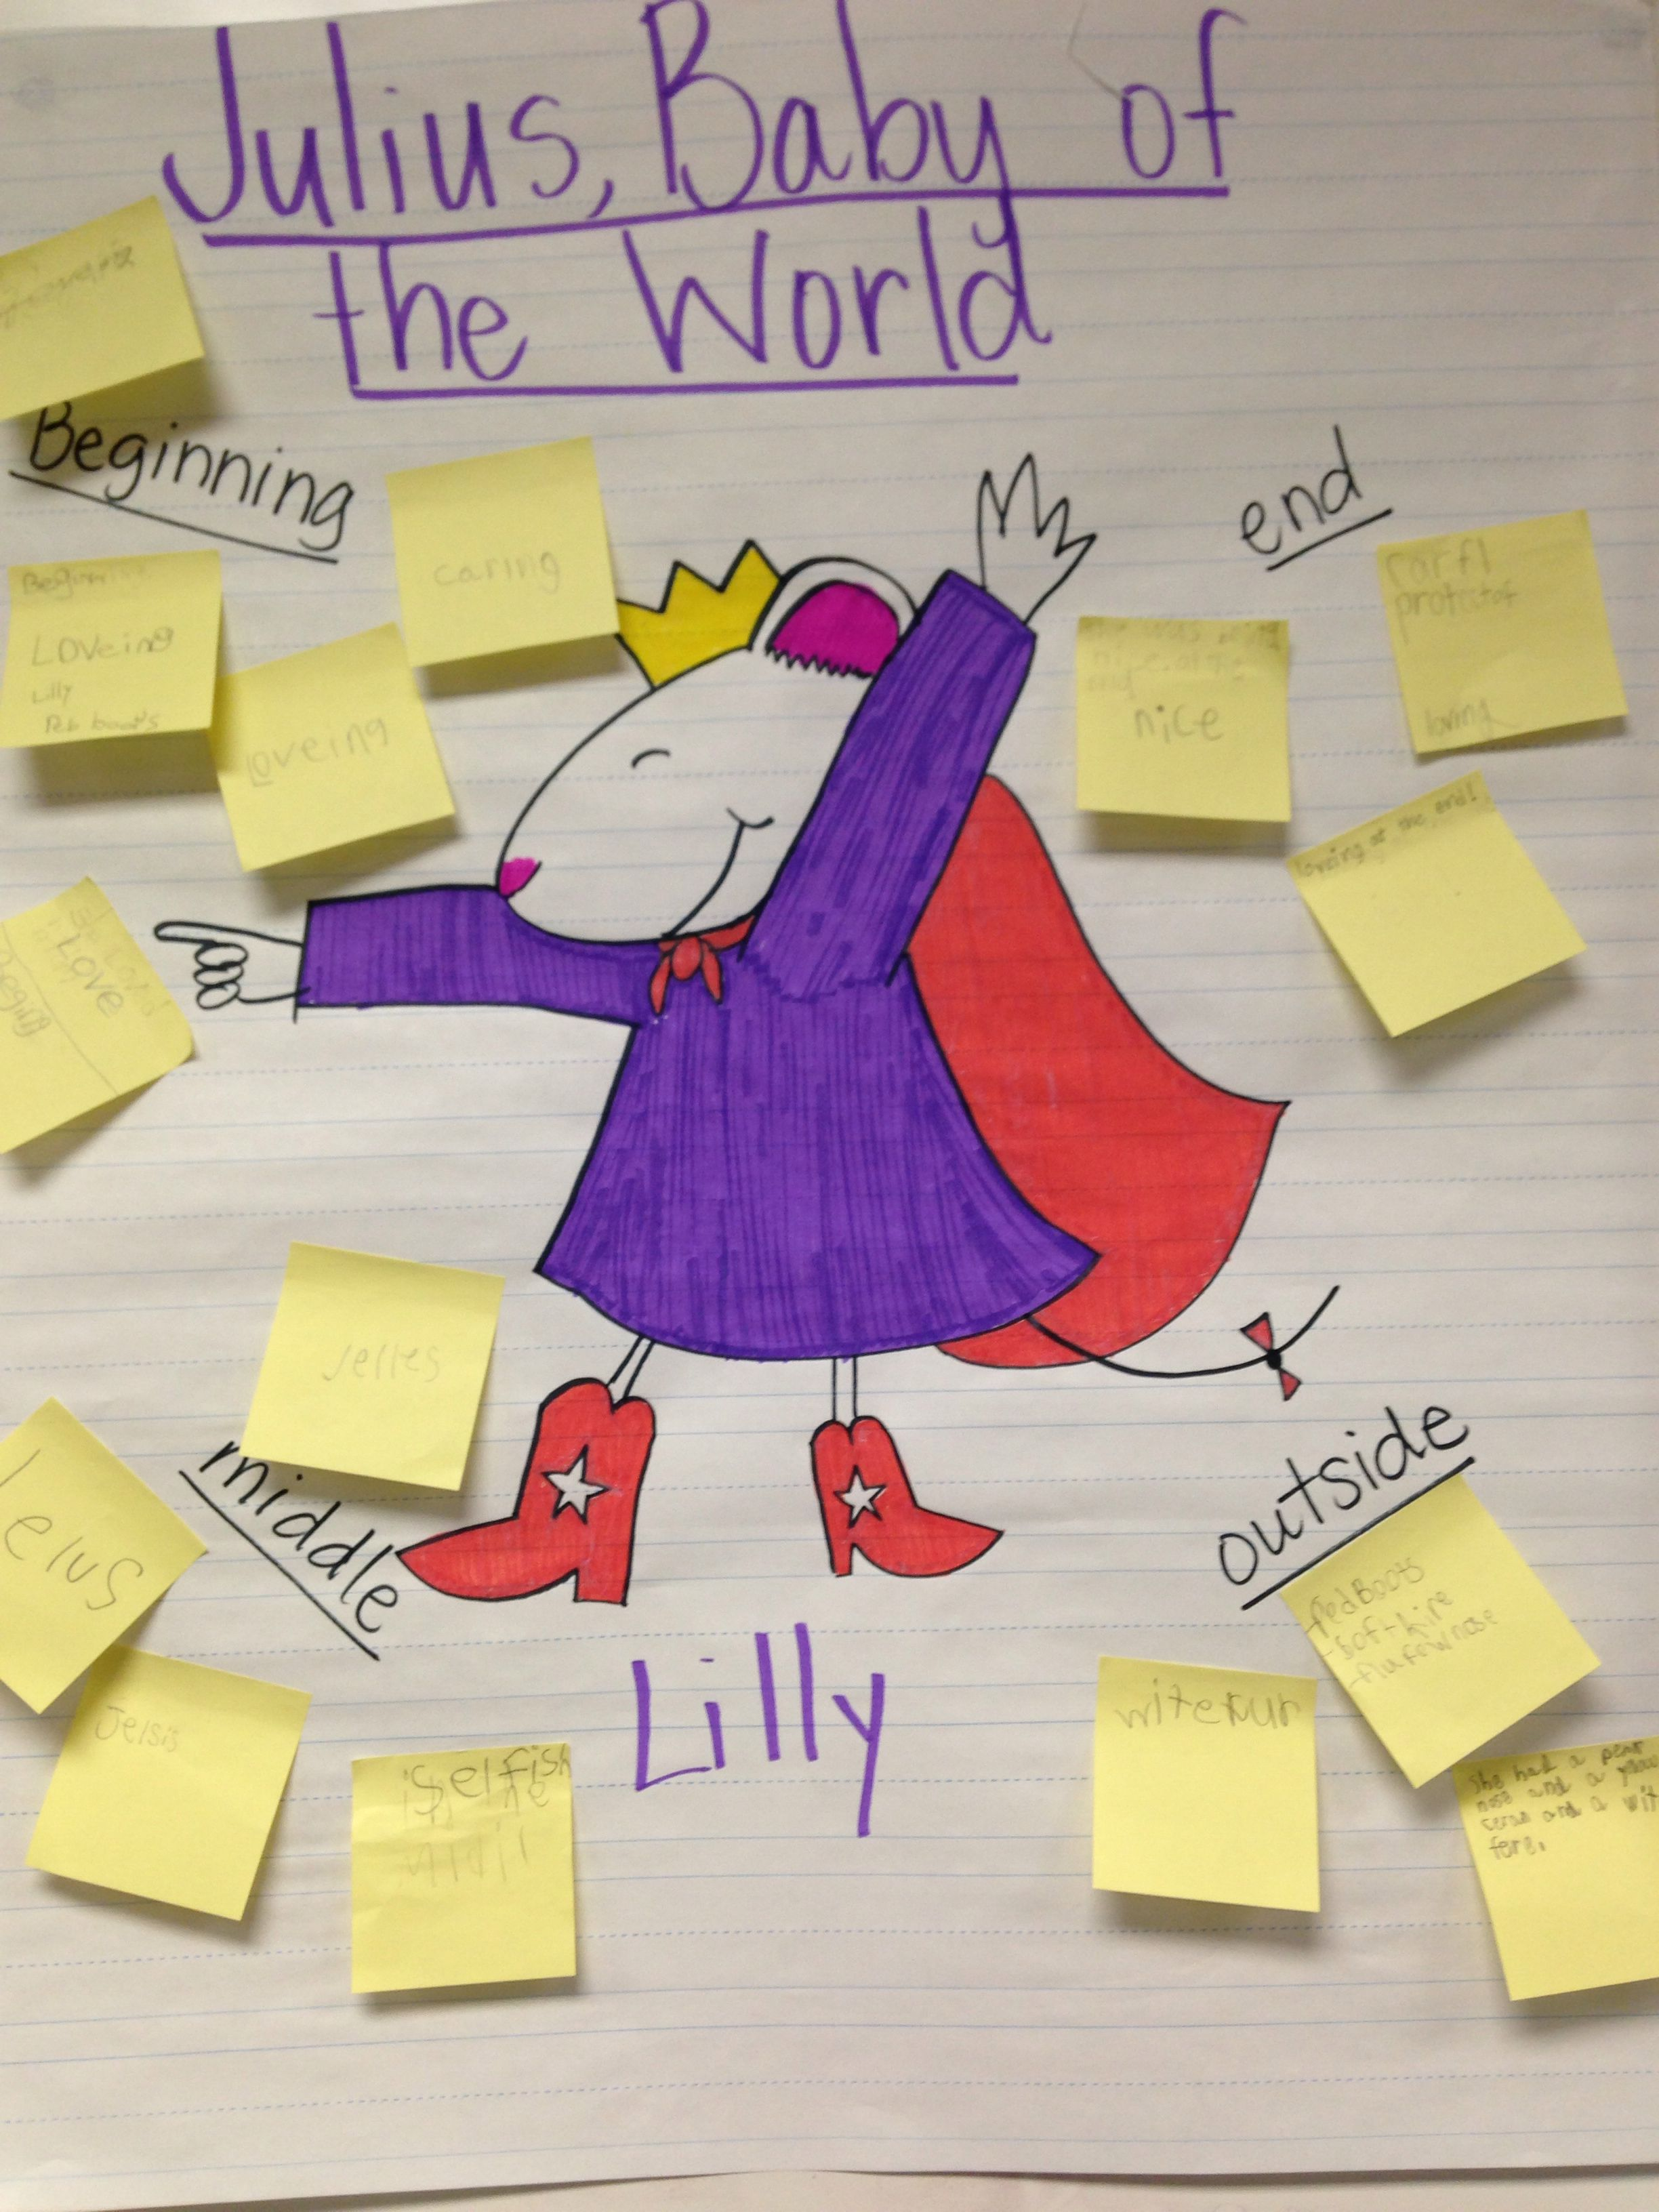 Character Traits Julius Baby Of The World Demonstrates How Characters Change Over Time